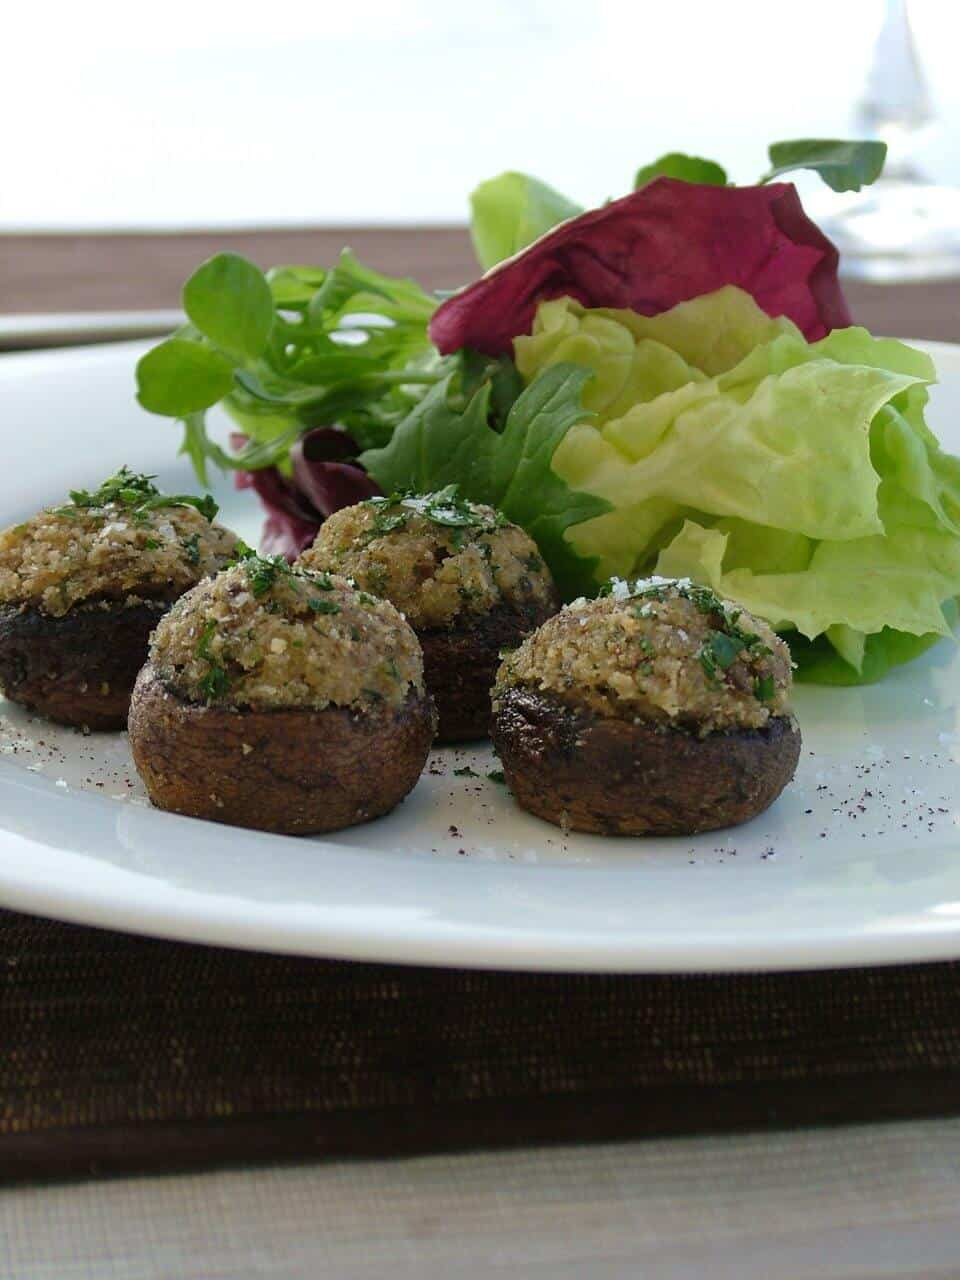 PARMESAN AND THYME STUFFED MUSHROOM CAPS